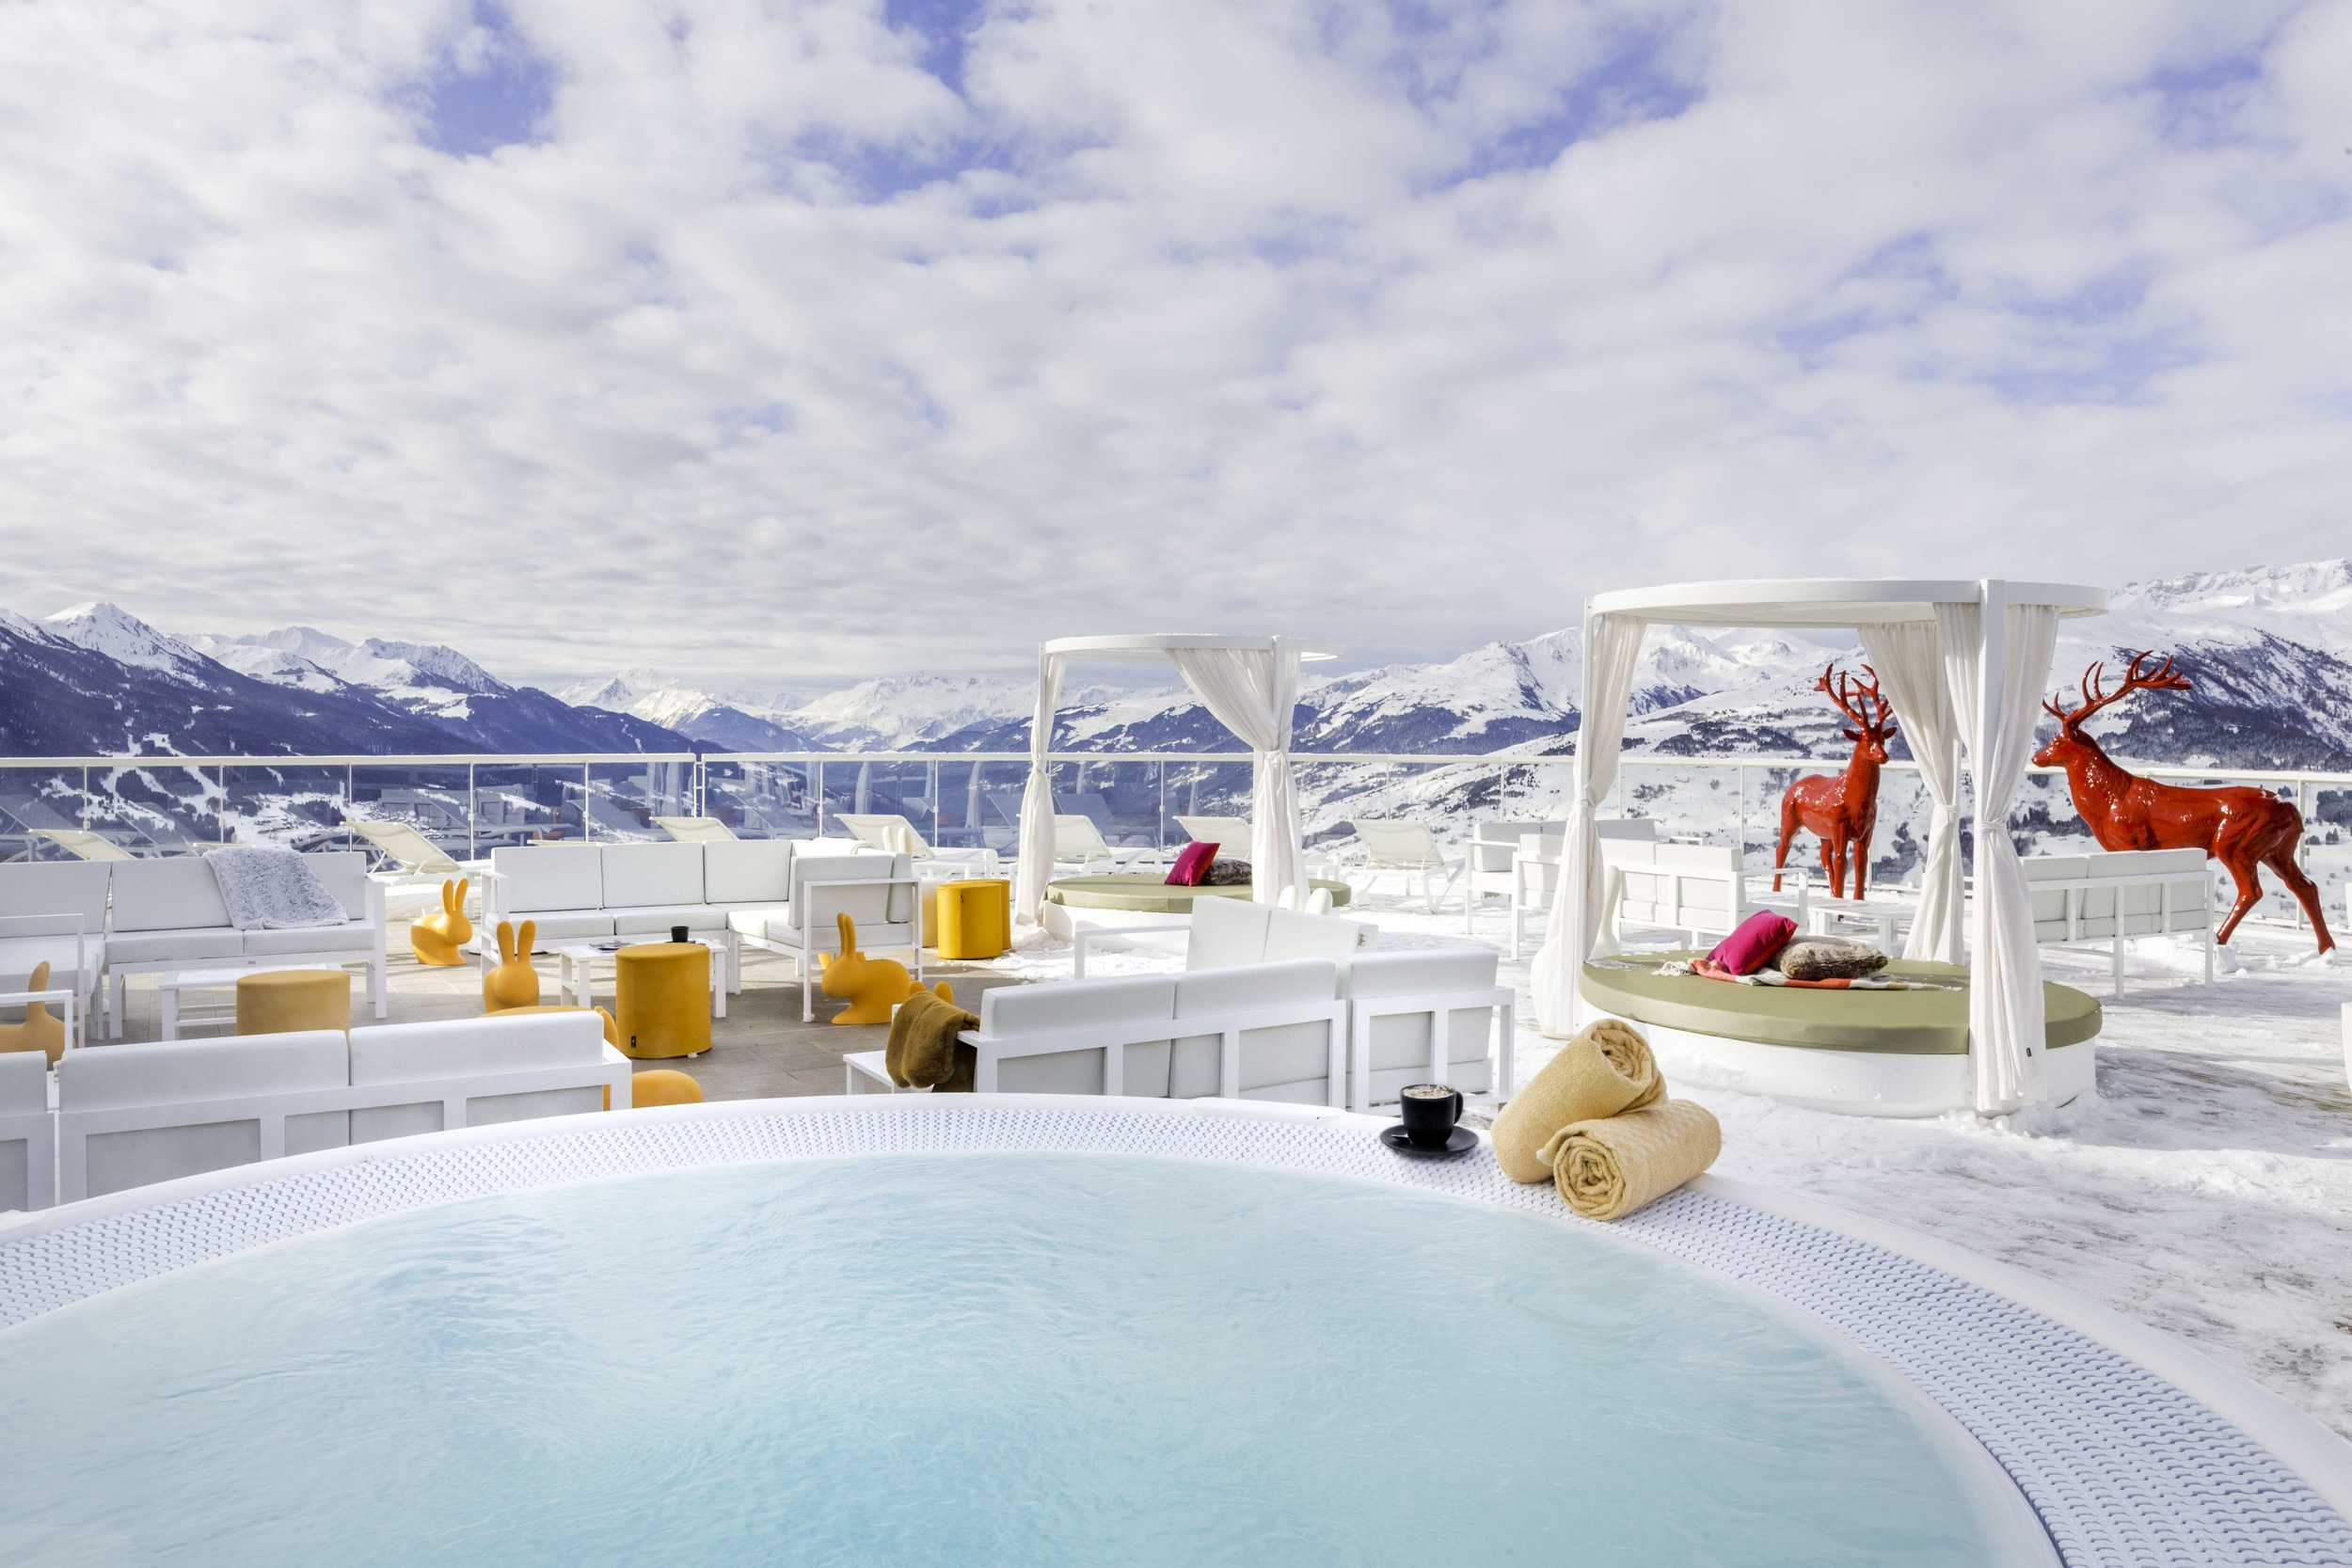 #4 From Ski to Apres Ski - Get the real mountain experience at your doorstep. Go snowshoeing, nordic walking or just dive in the pool. Parents can relax in the hot tub while bub is in the Kids Club or reunite for a fun time together in the indoor heater pool with a view. All included!